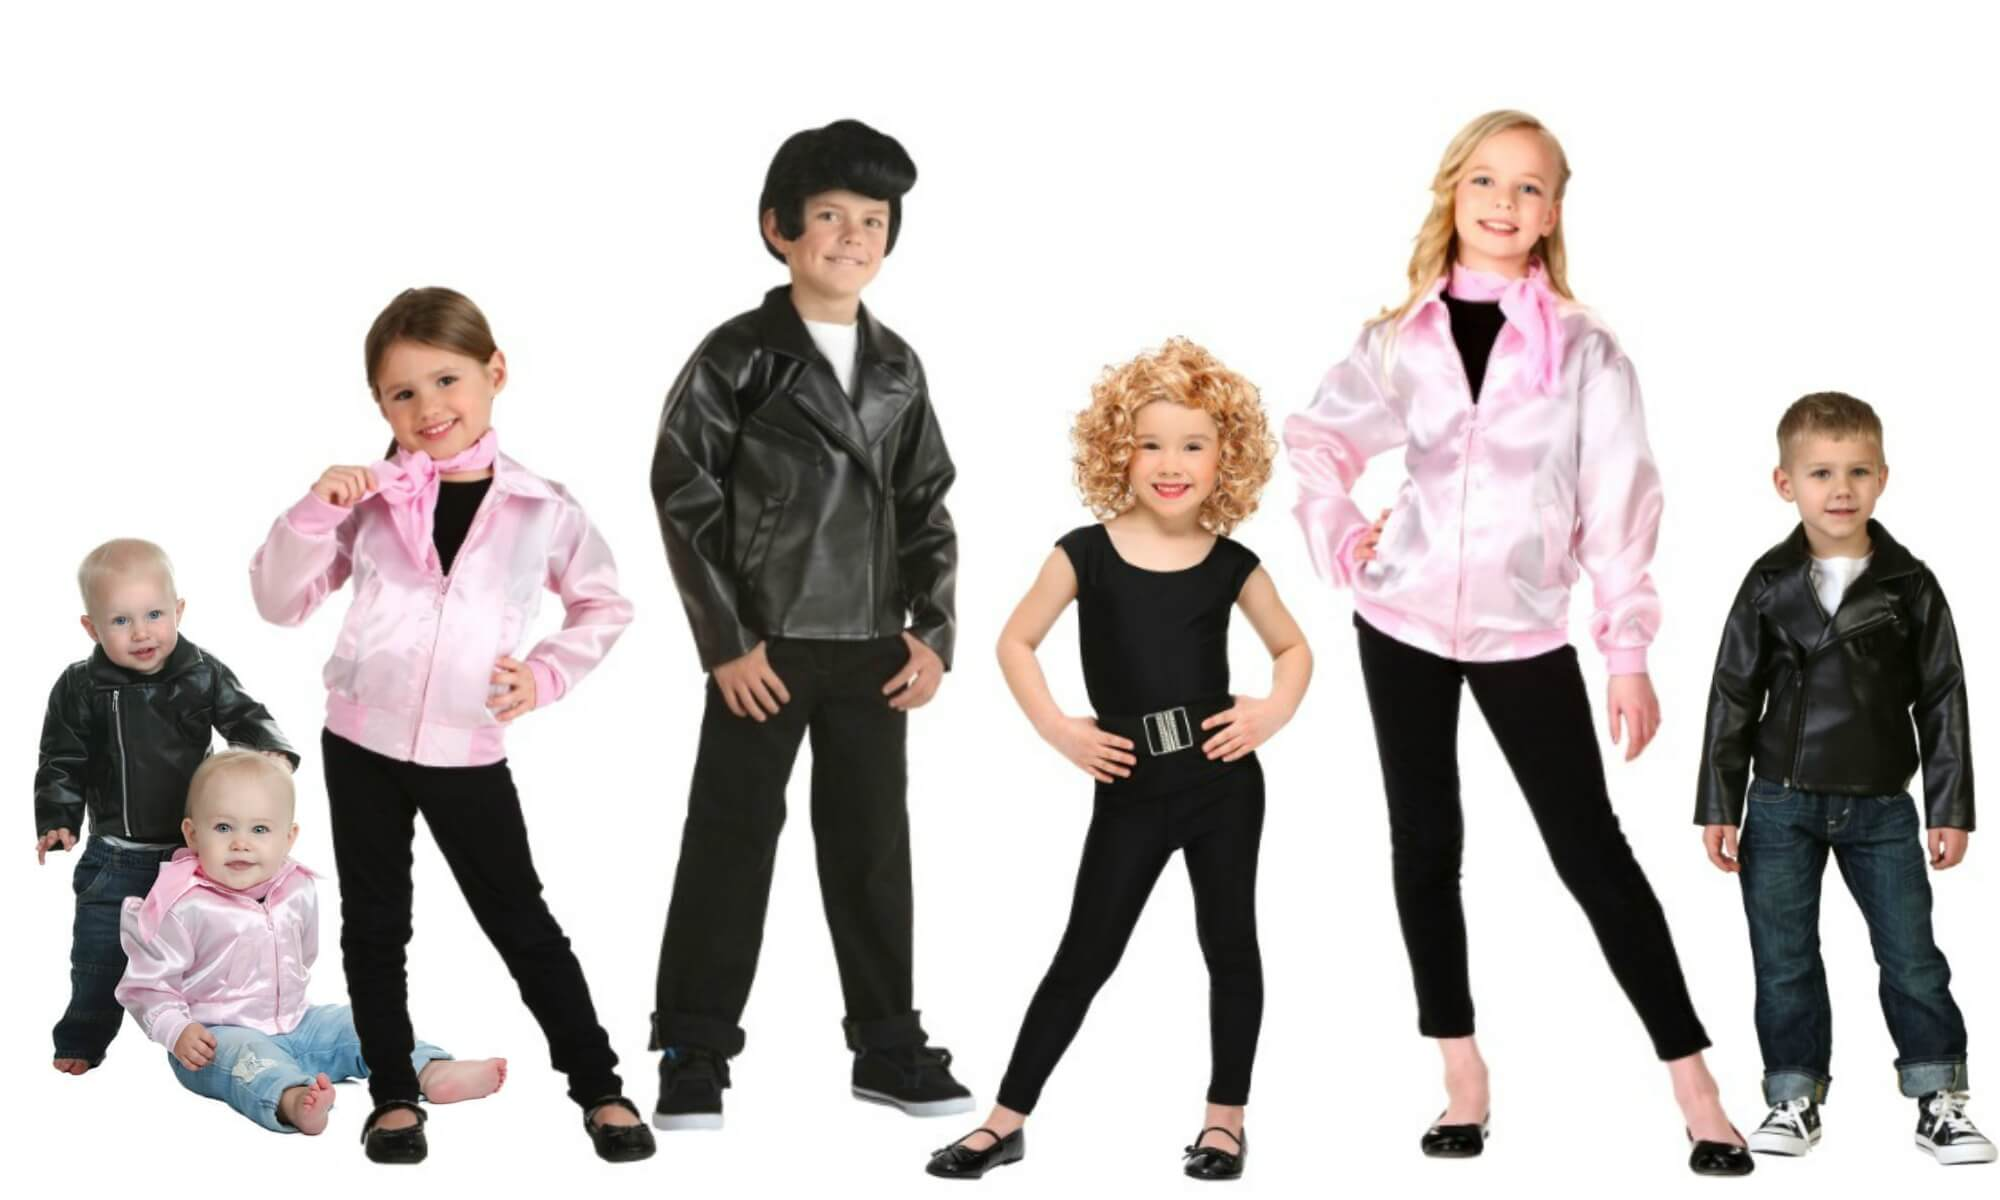 grease costumes - Greece Halloween Costumes